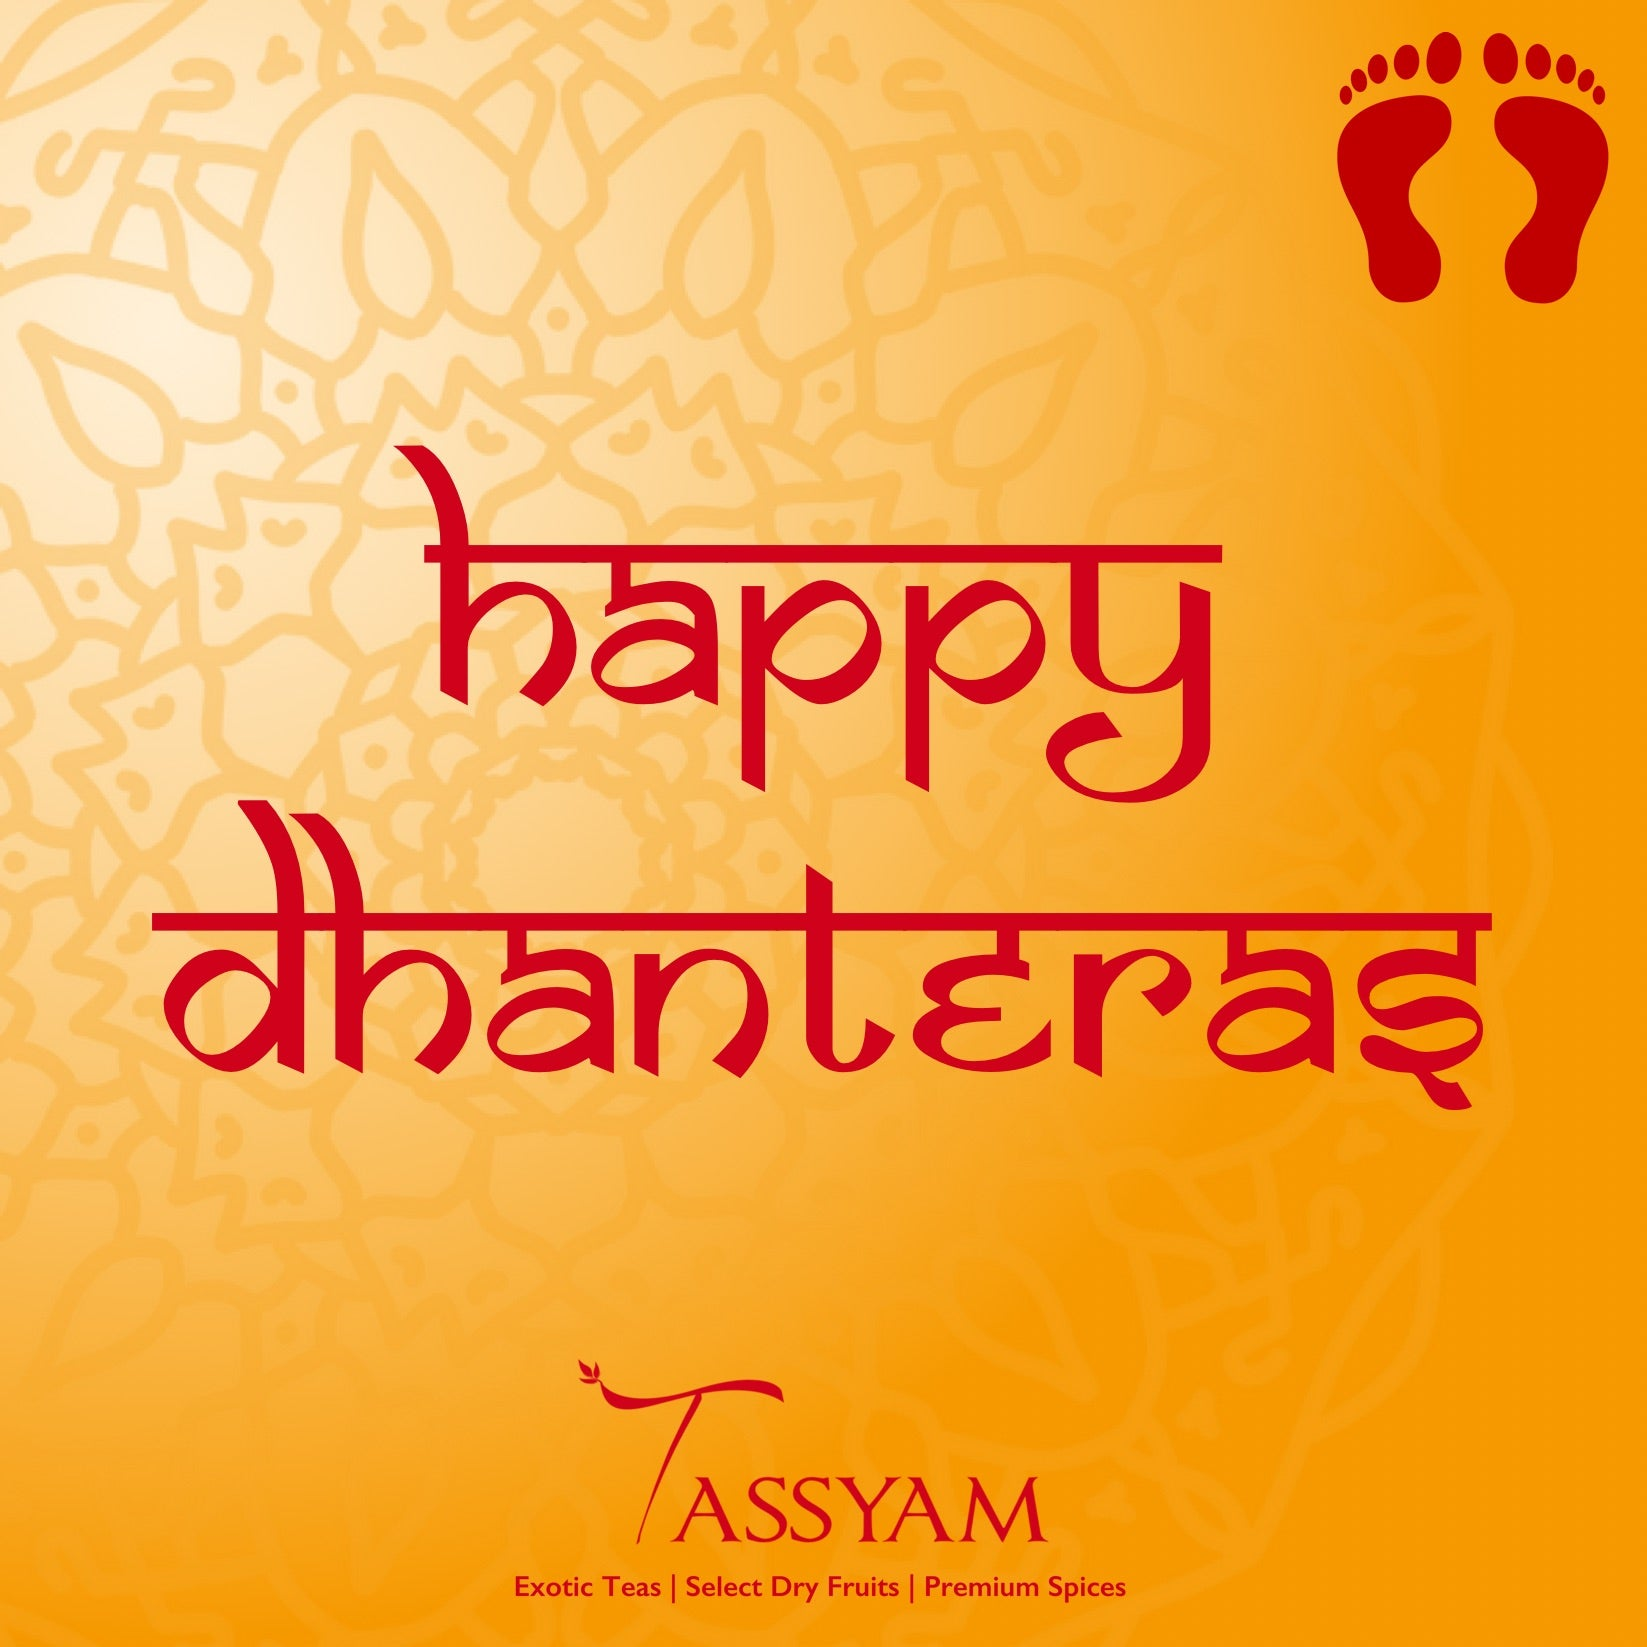 This Dhanteras give the WEALTH of HEALTH with Tassyam!